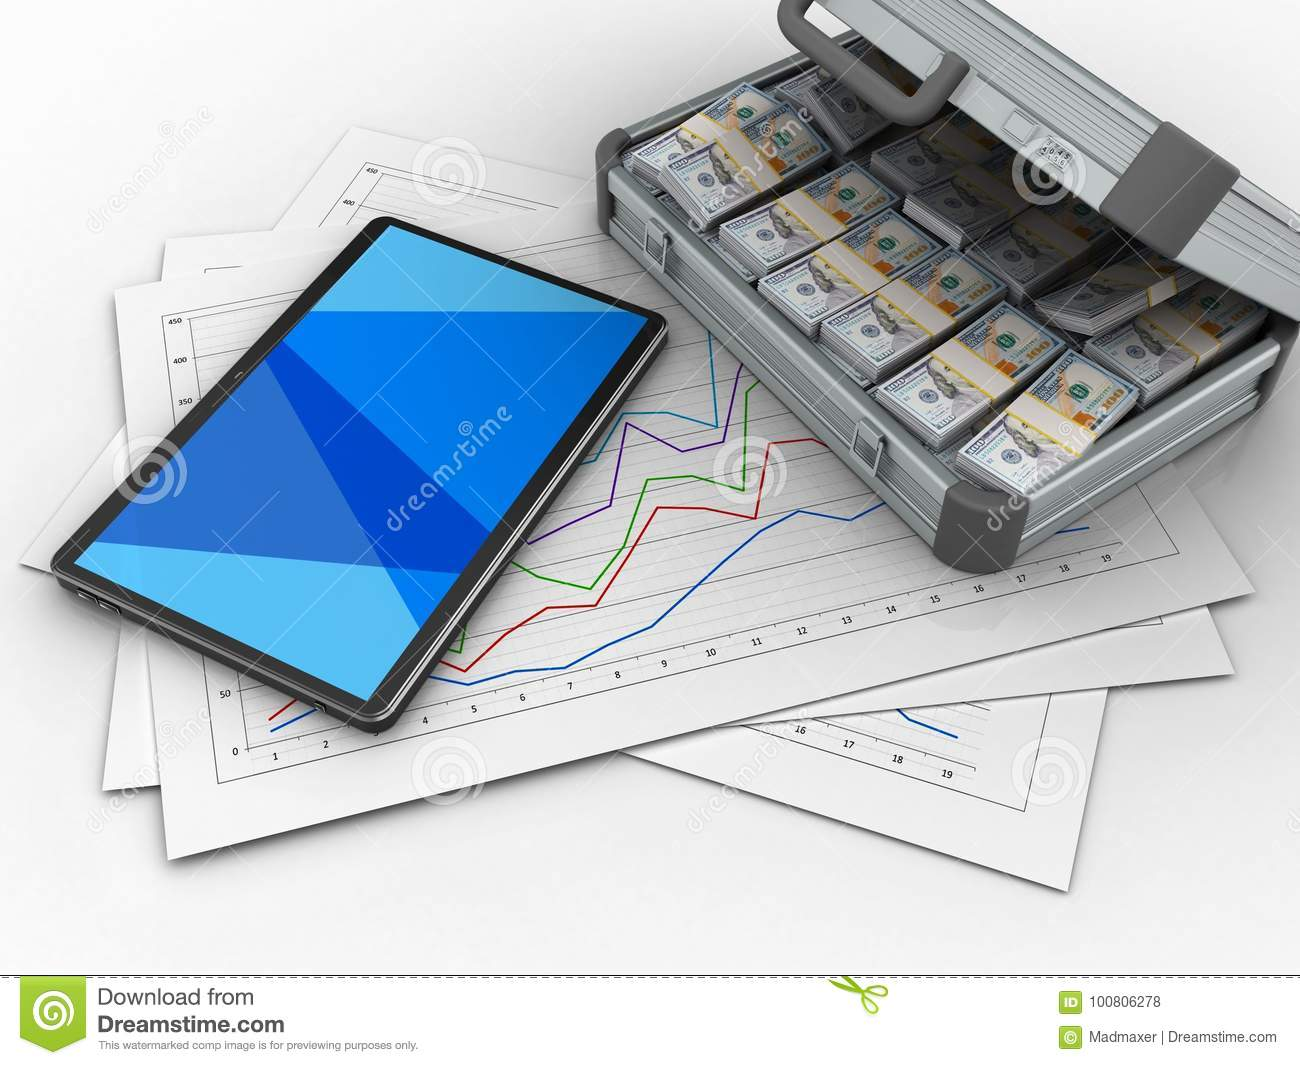 d illustration diagram papers tablet computer over white background case d blank 100806278 3d blank stock illustration illustration of blue, heap 100806278